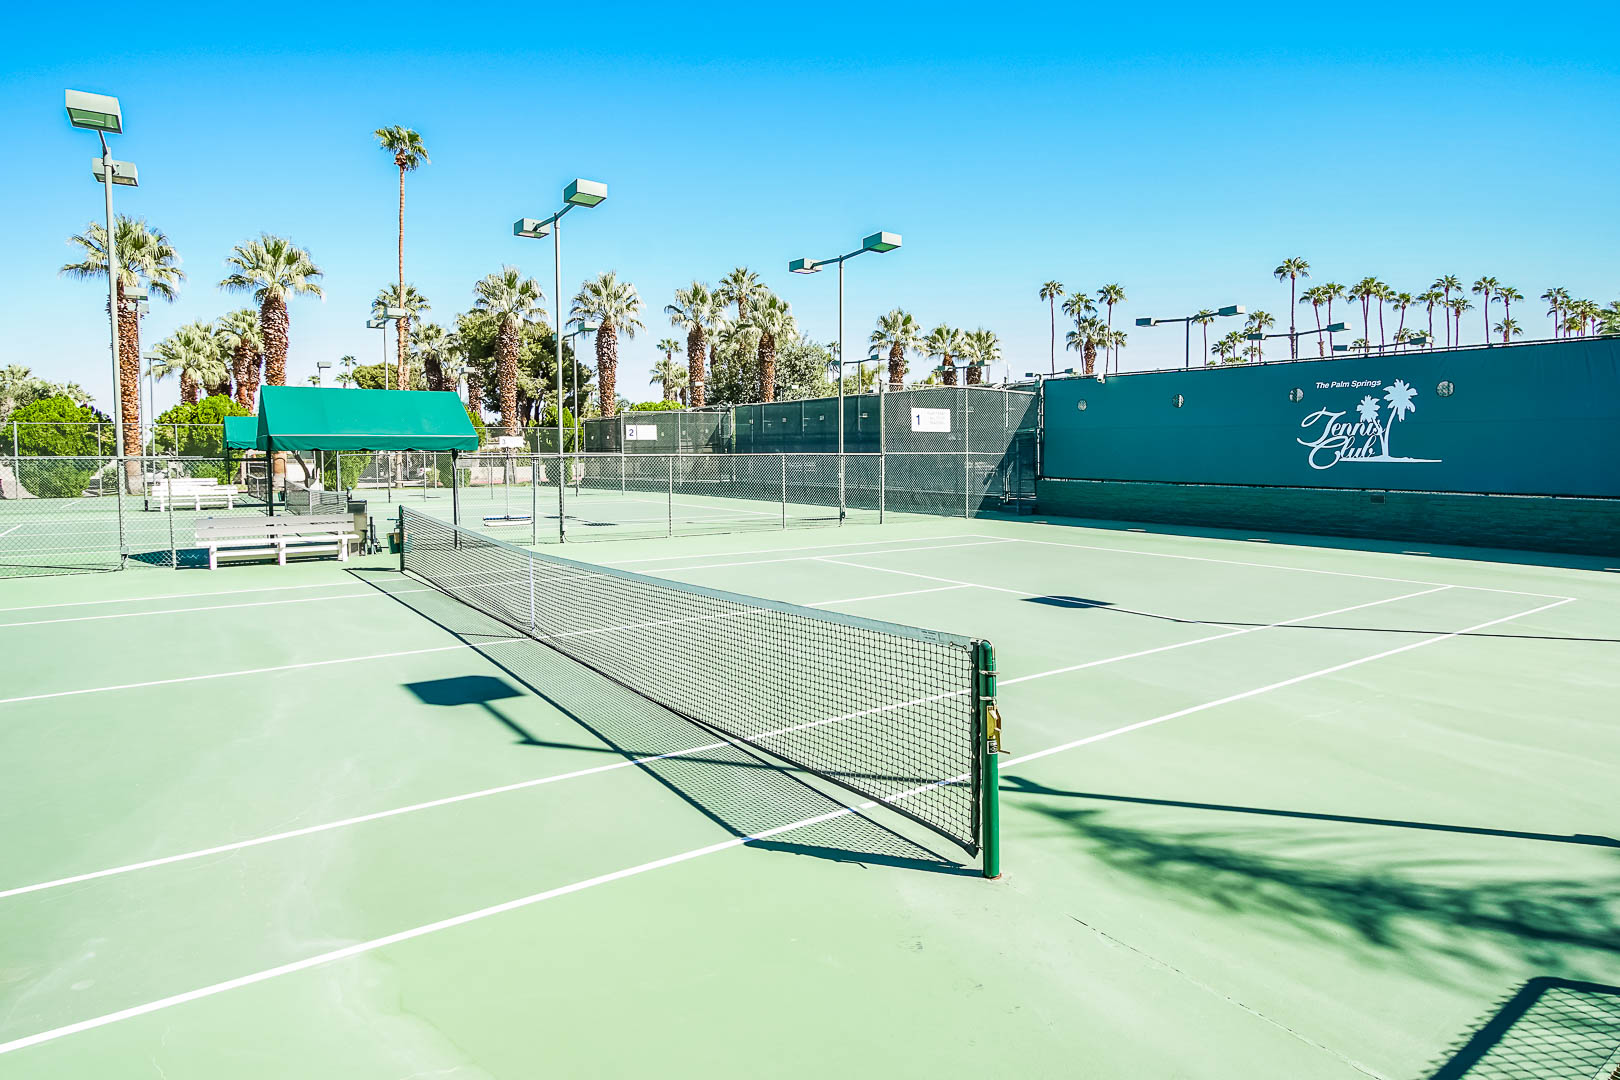 An expansive view of the outdoor tennis courts at VRI's Palm Springs Tennis Club in California.